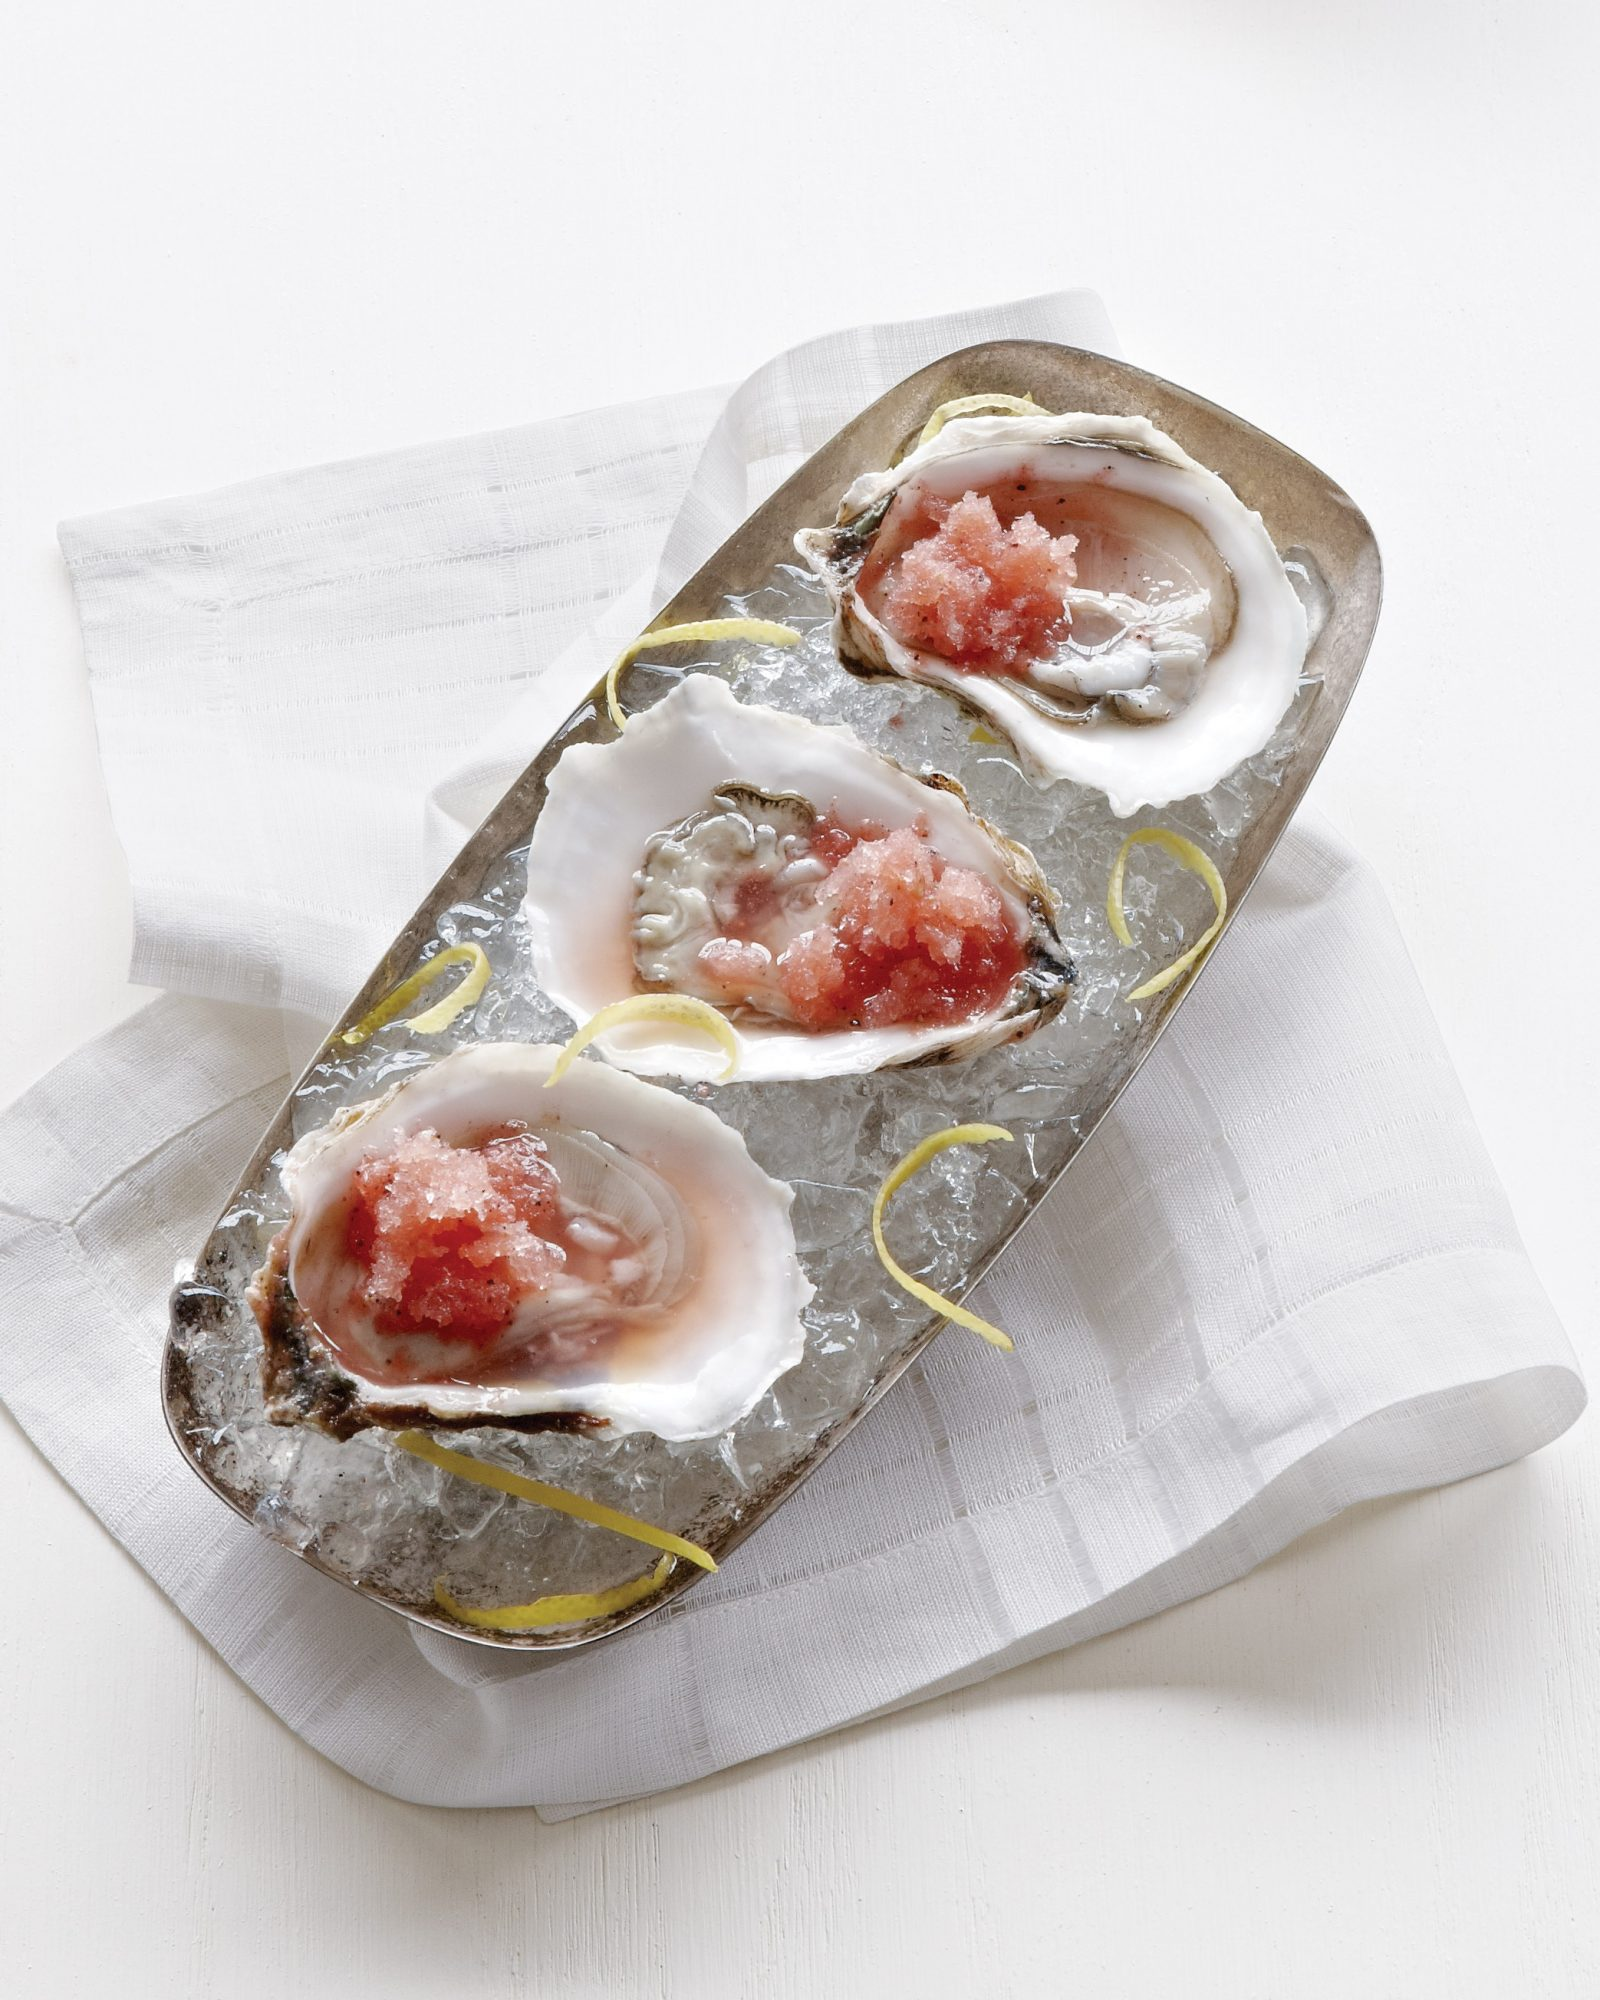 Oysters on the Half Shell with Watermelon Granita